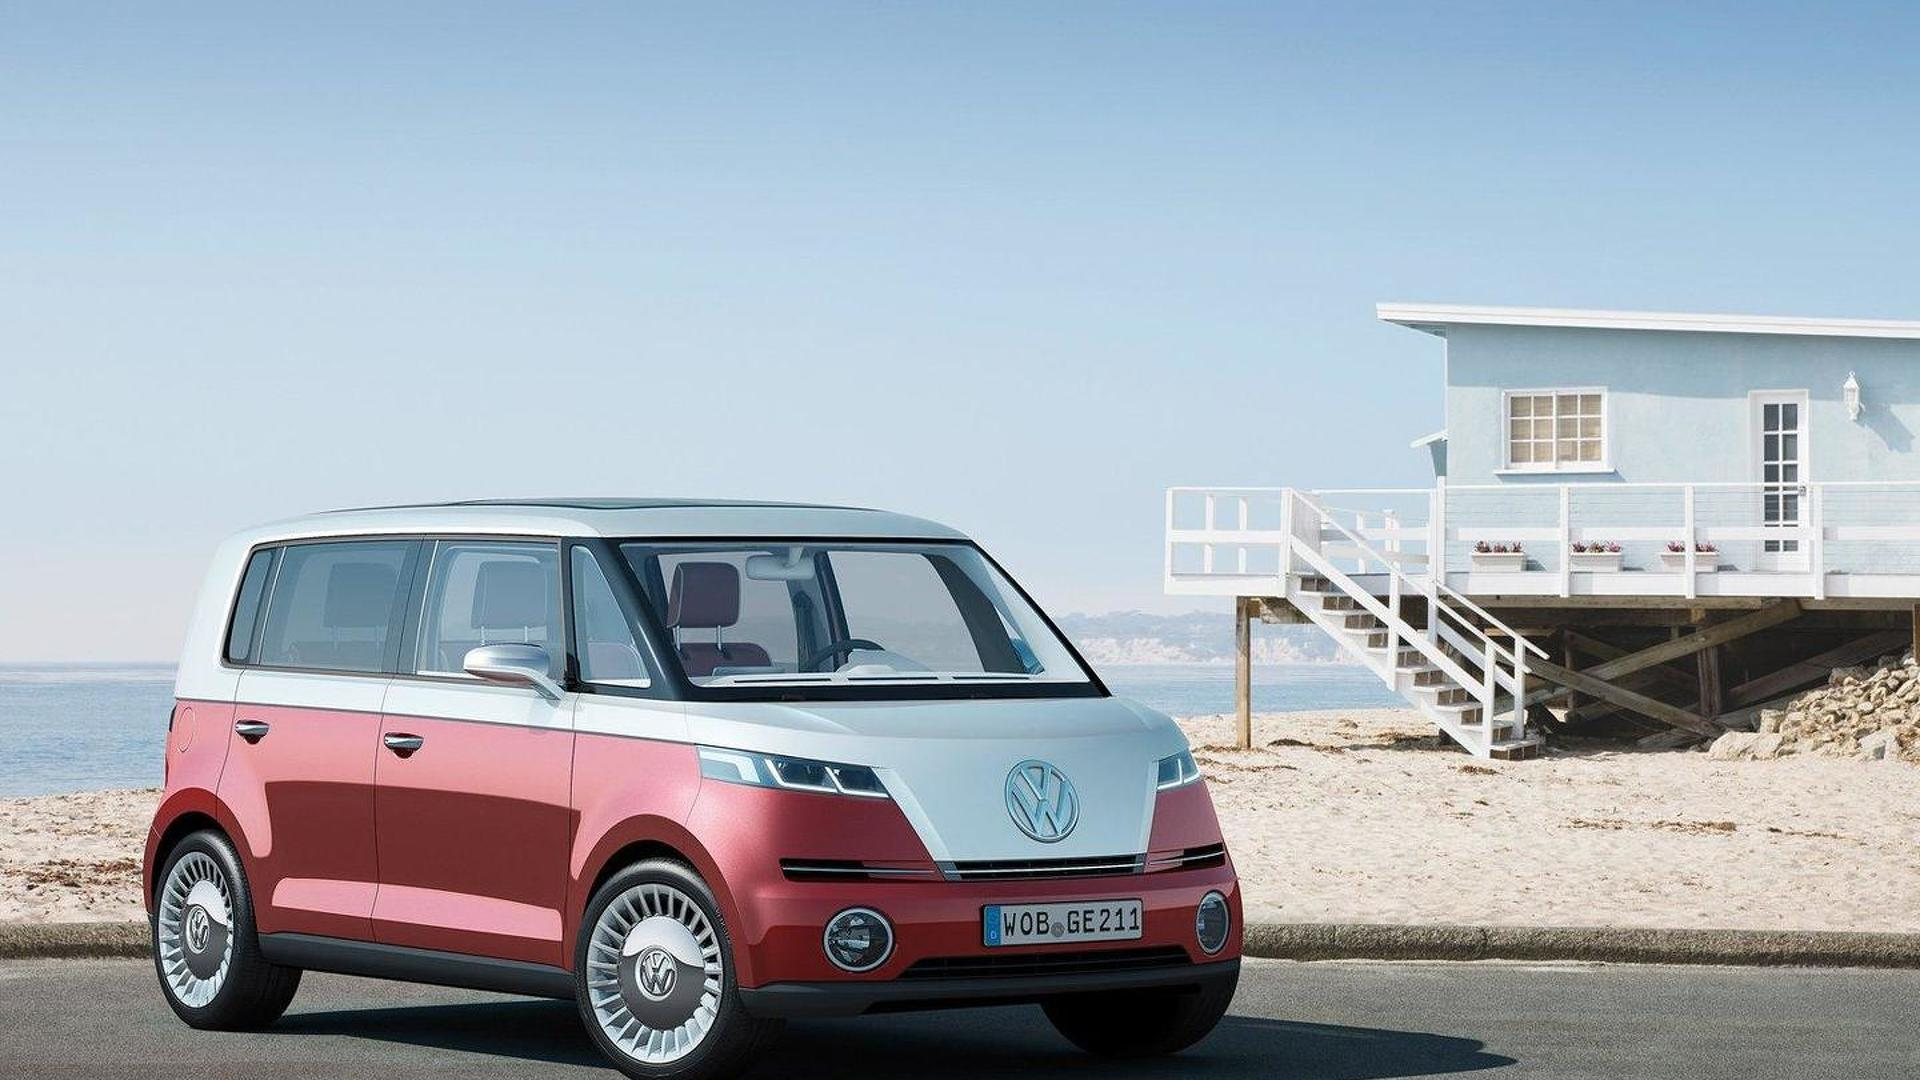 VW Microbus concept rumored for CES